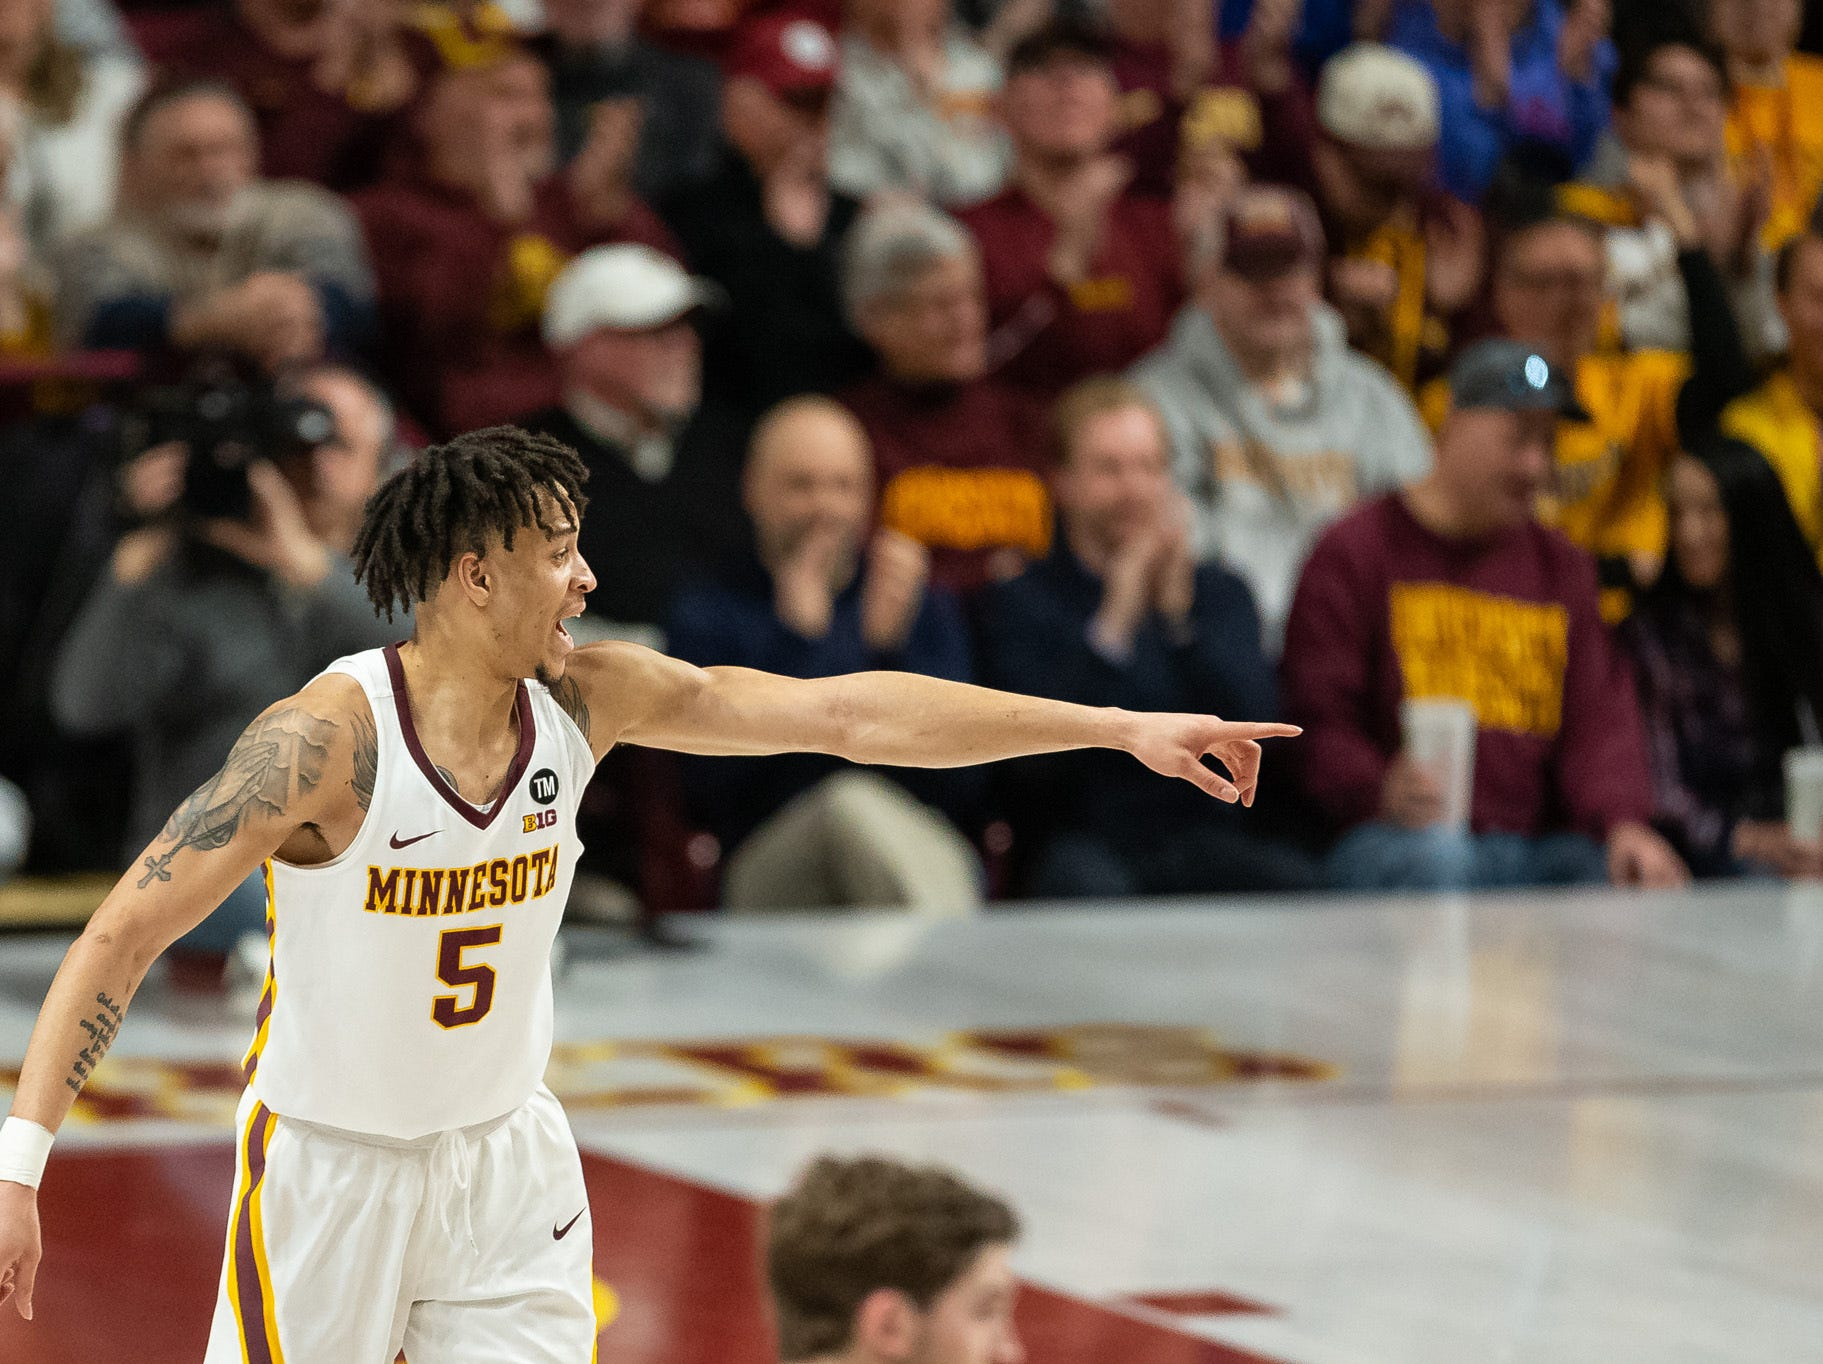 Mar 5, 2019; Minneapolis, MN, USA; Minnesota Gophers guard Amir Coffey (5) signals to a teammate during the first half against the Purdue Boilermakers at Williams Arena. Mandatory Credit: Harrison Barden-USA TODAY Sports